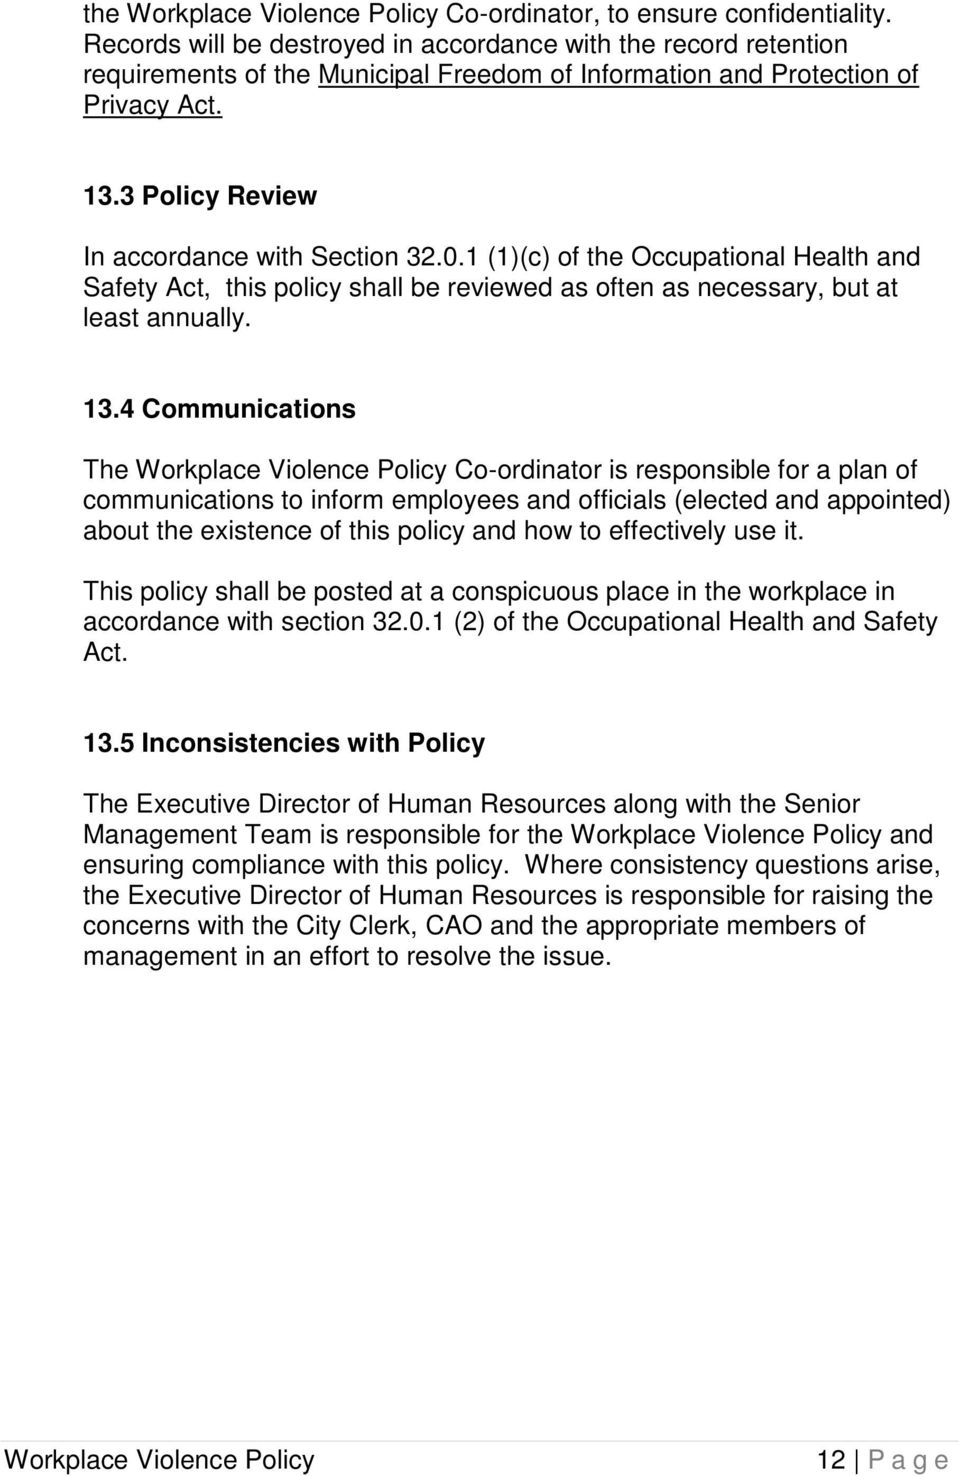 4 Communications The Co-ordinator is responsible for a plan of communications to inform employees and officials (elected and appointed) about the existence of this policy and how to effectively use